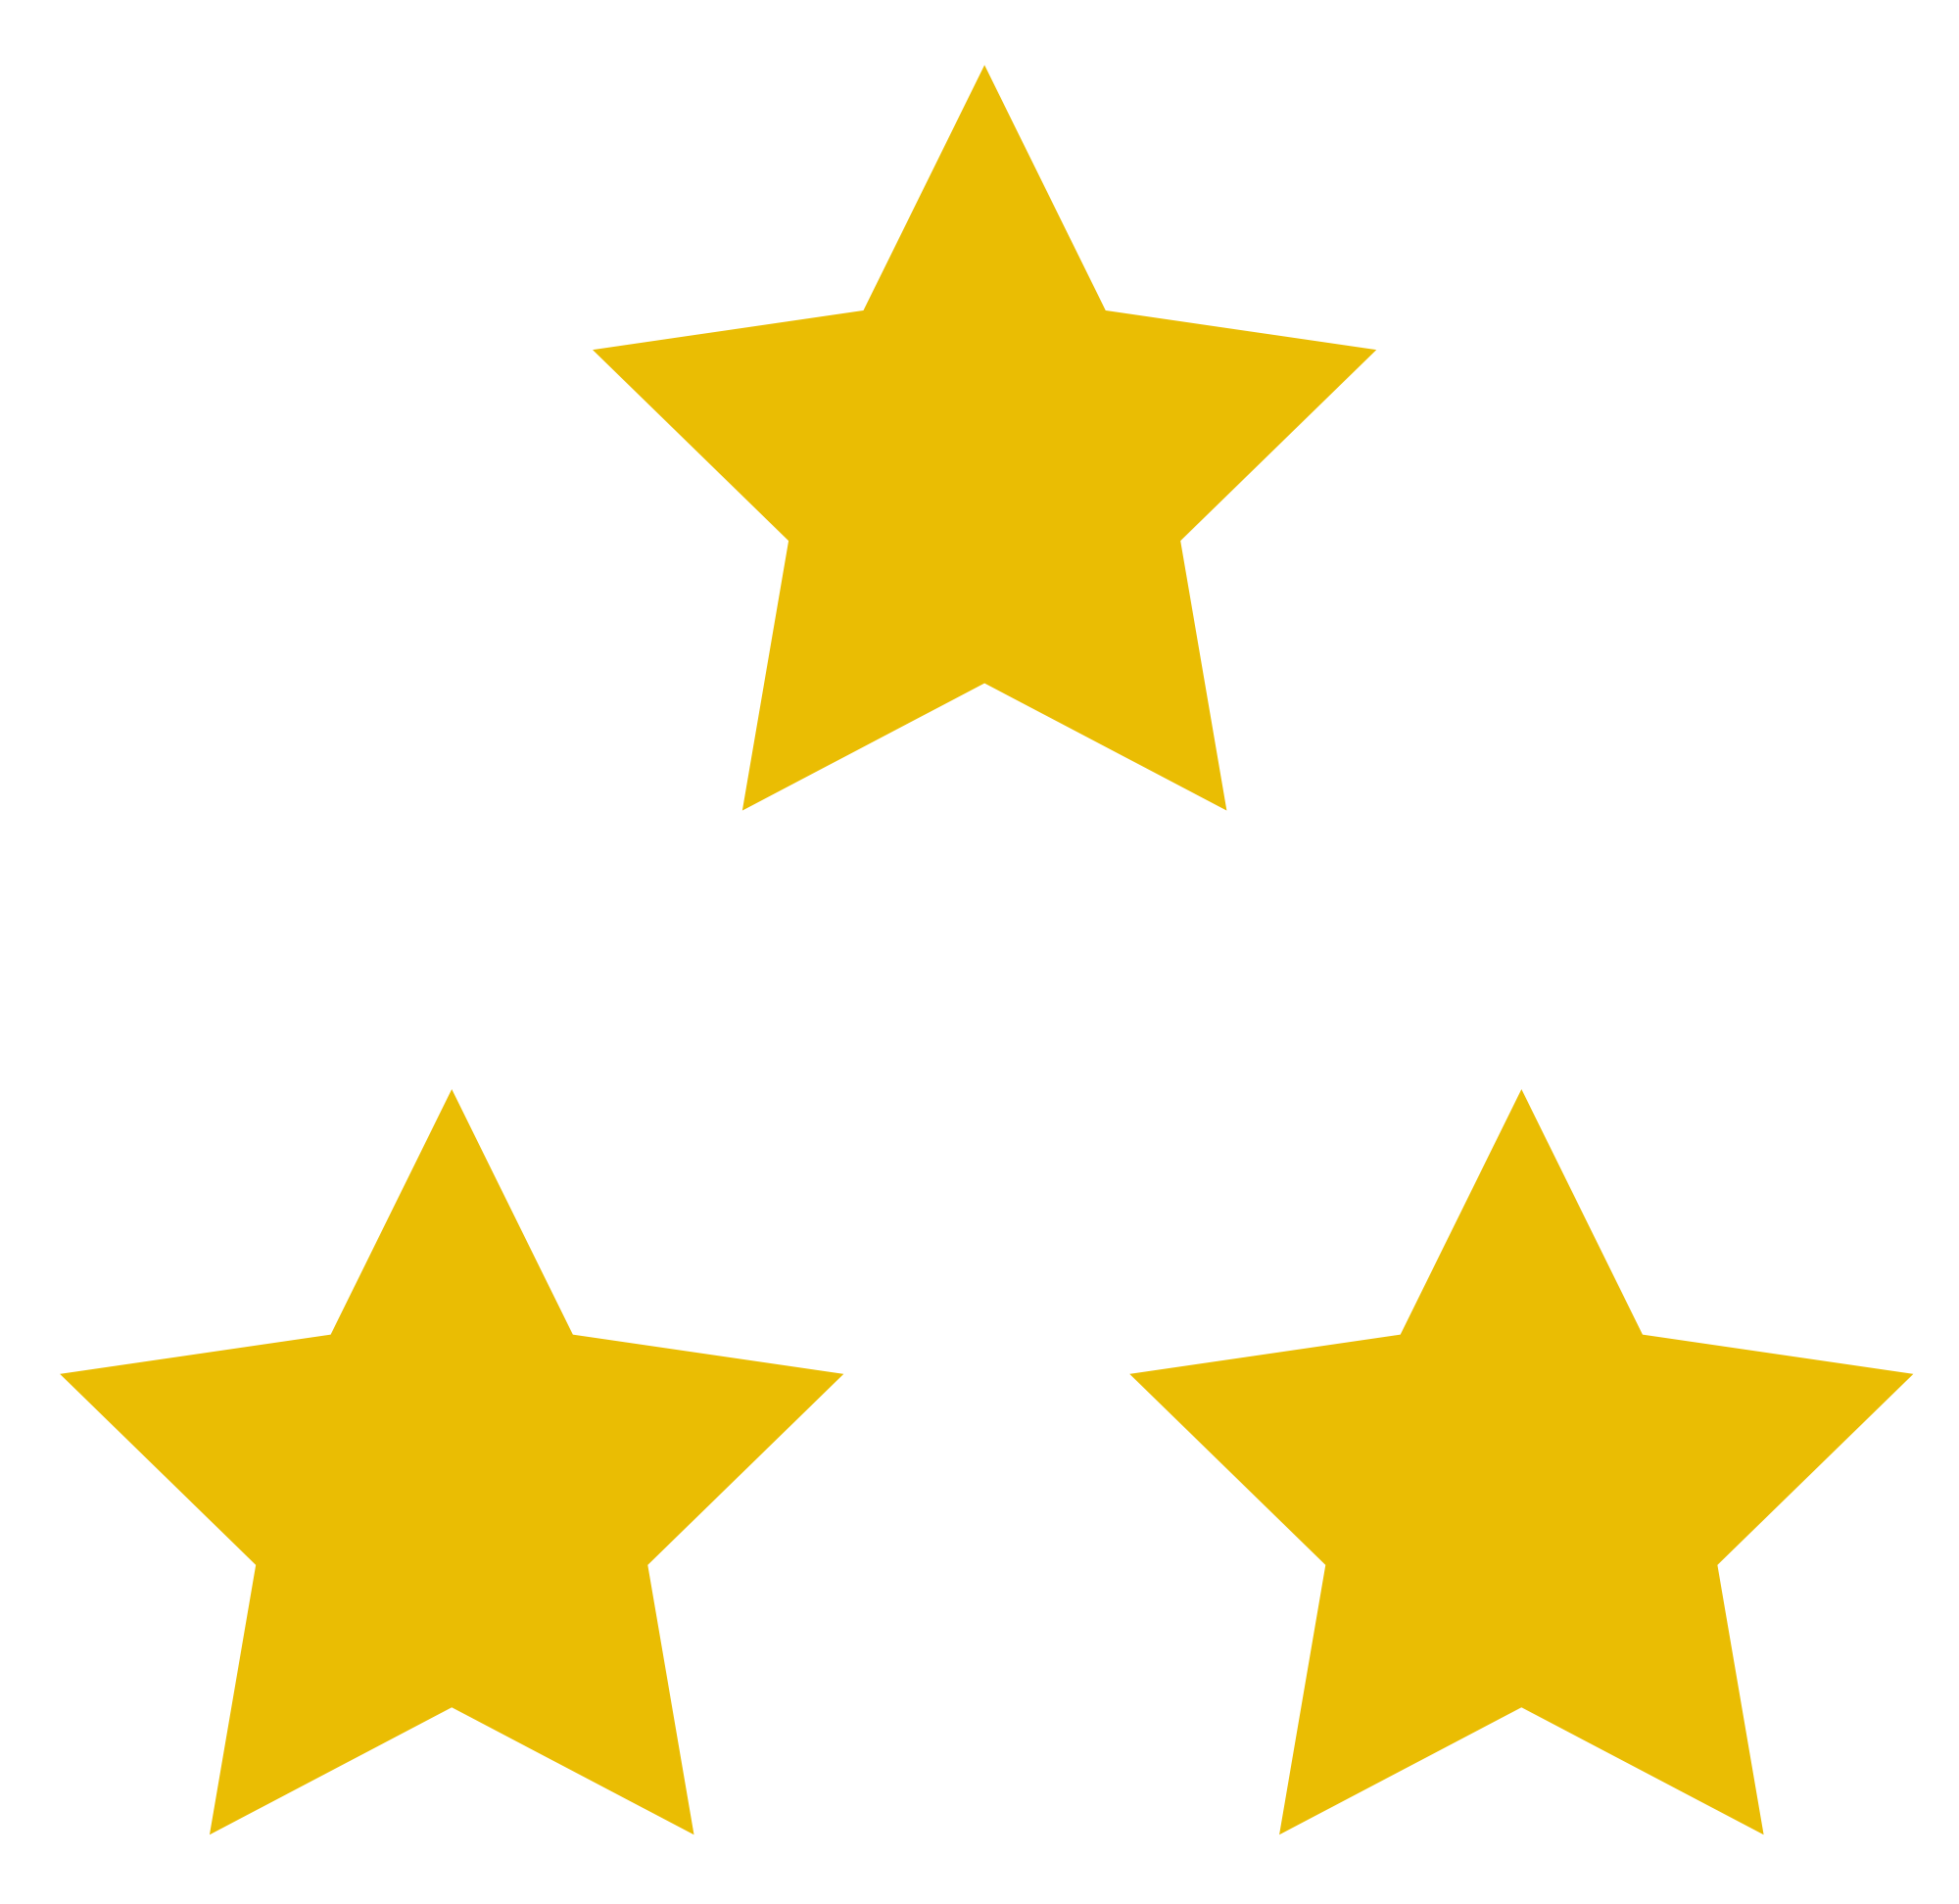 Stars svg #17, Download drawings